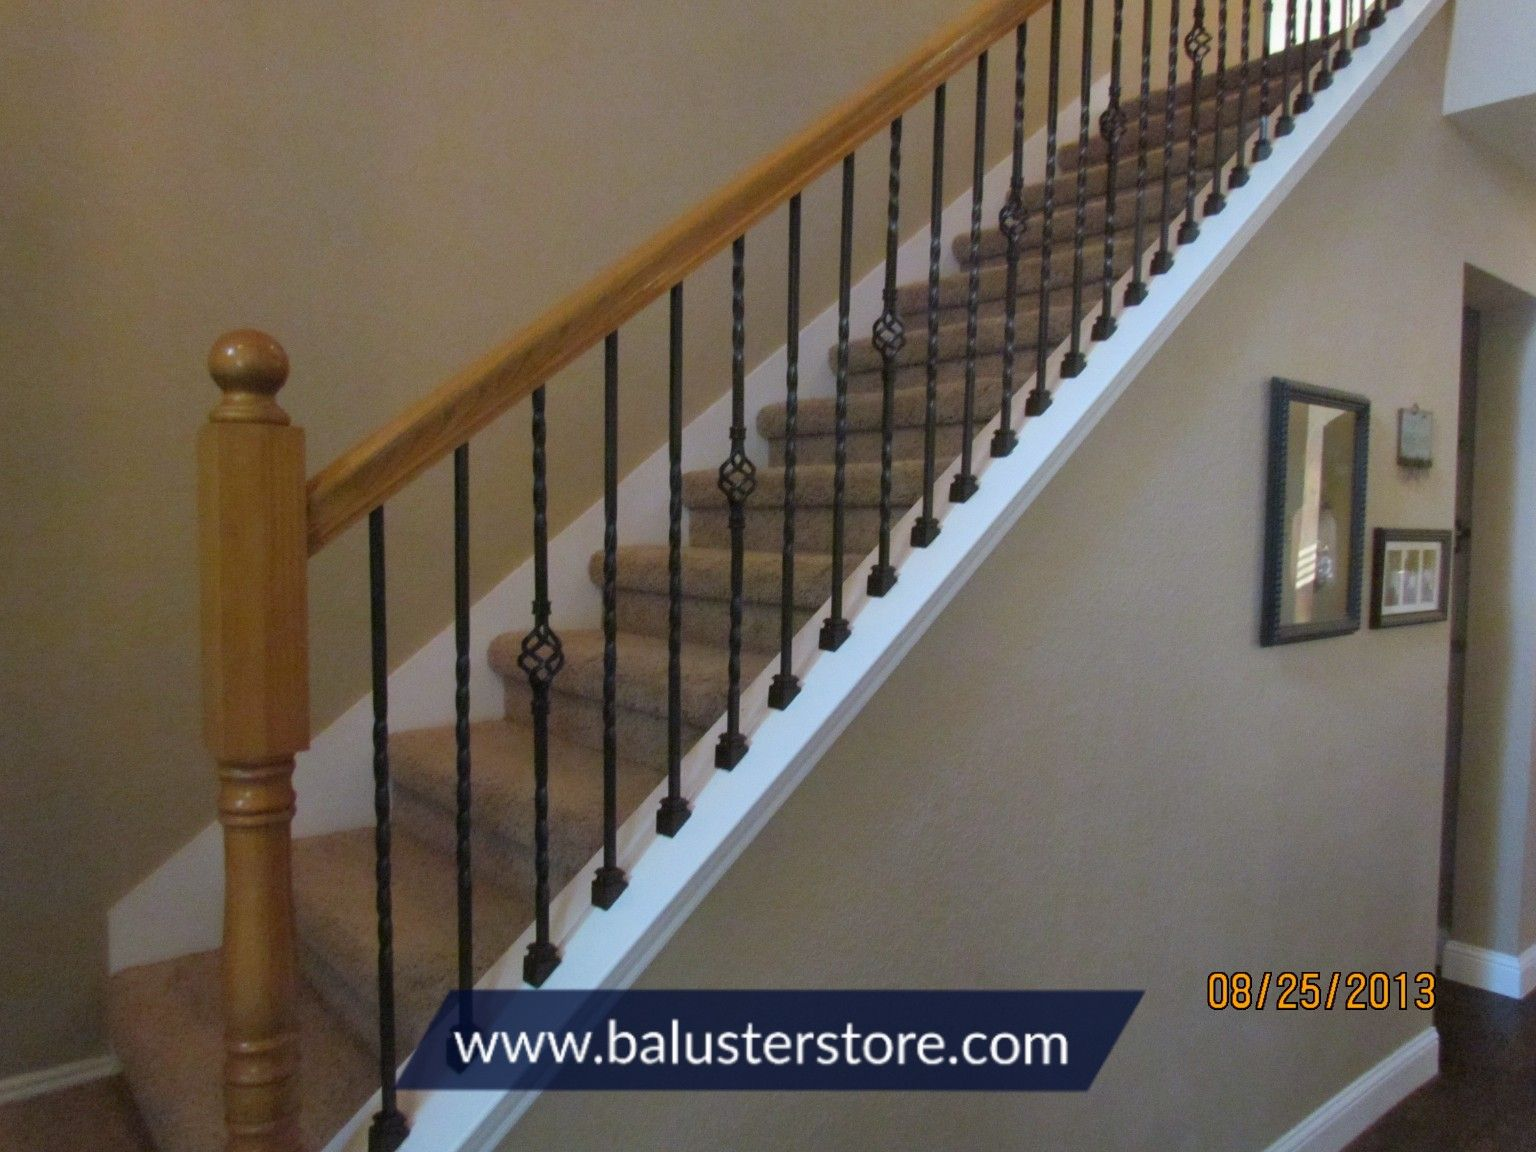 Knee Wall Balusters Carpet Stairs Iron Balusters Stair Design